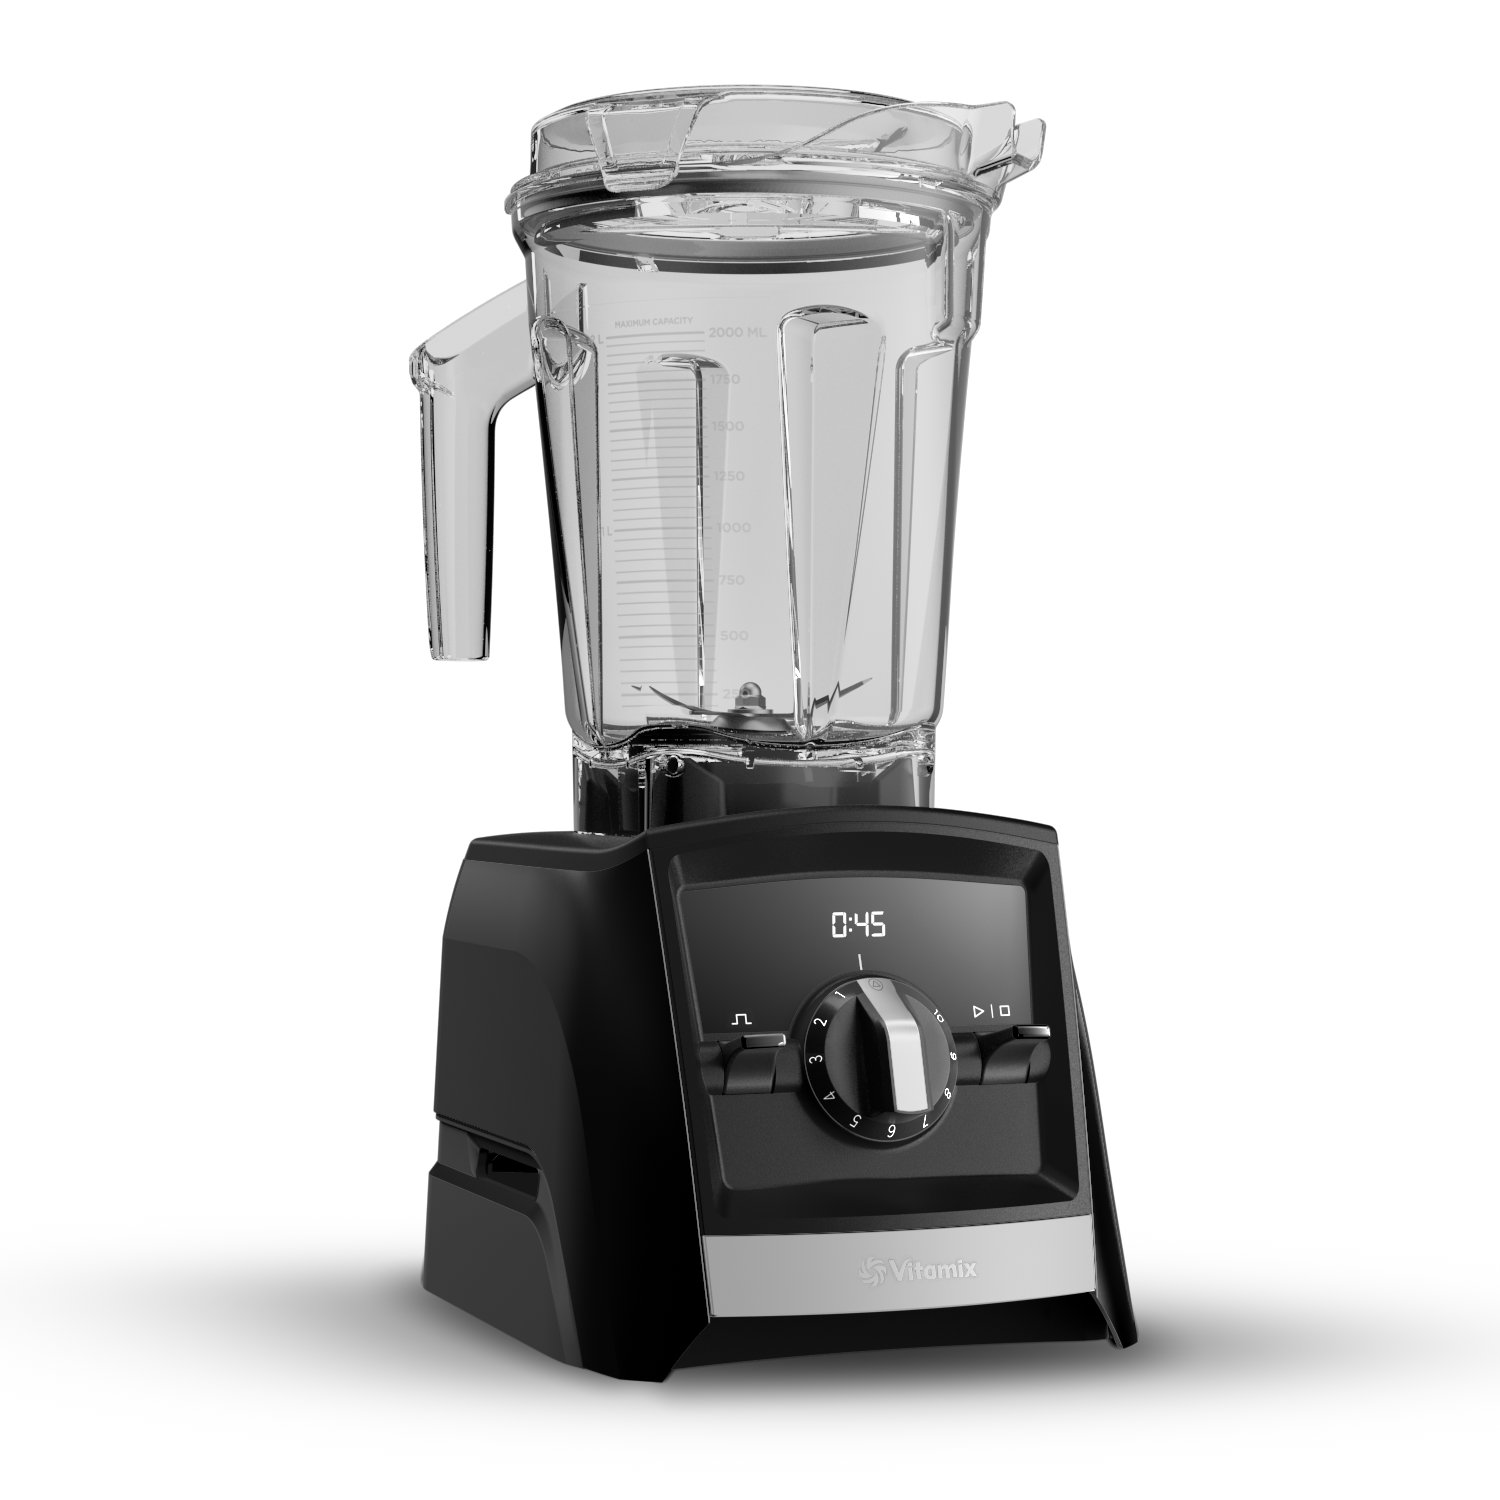 Vitamix A2300 Ascent Series Smart Blender, Professional-Grade, 64 oz. Low-Profile Container, Black by Vitamix